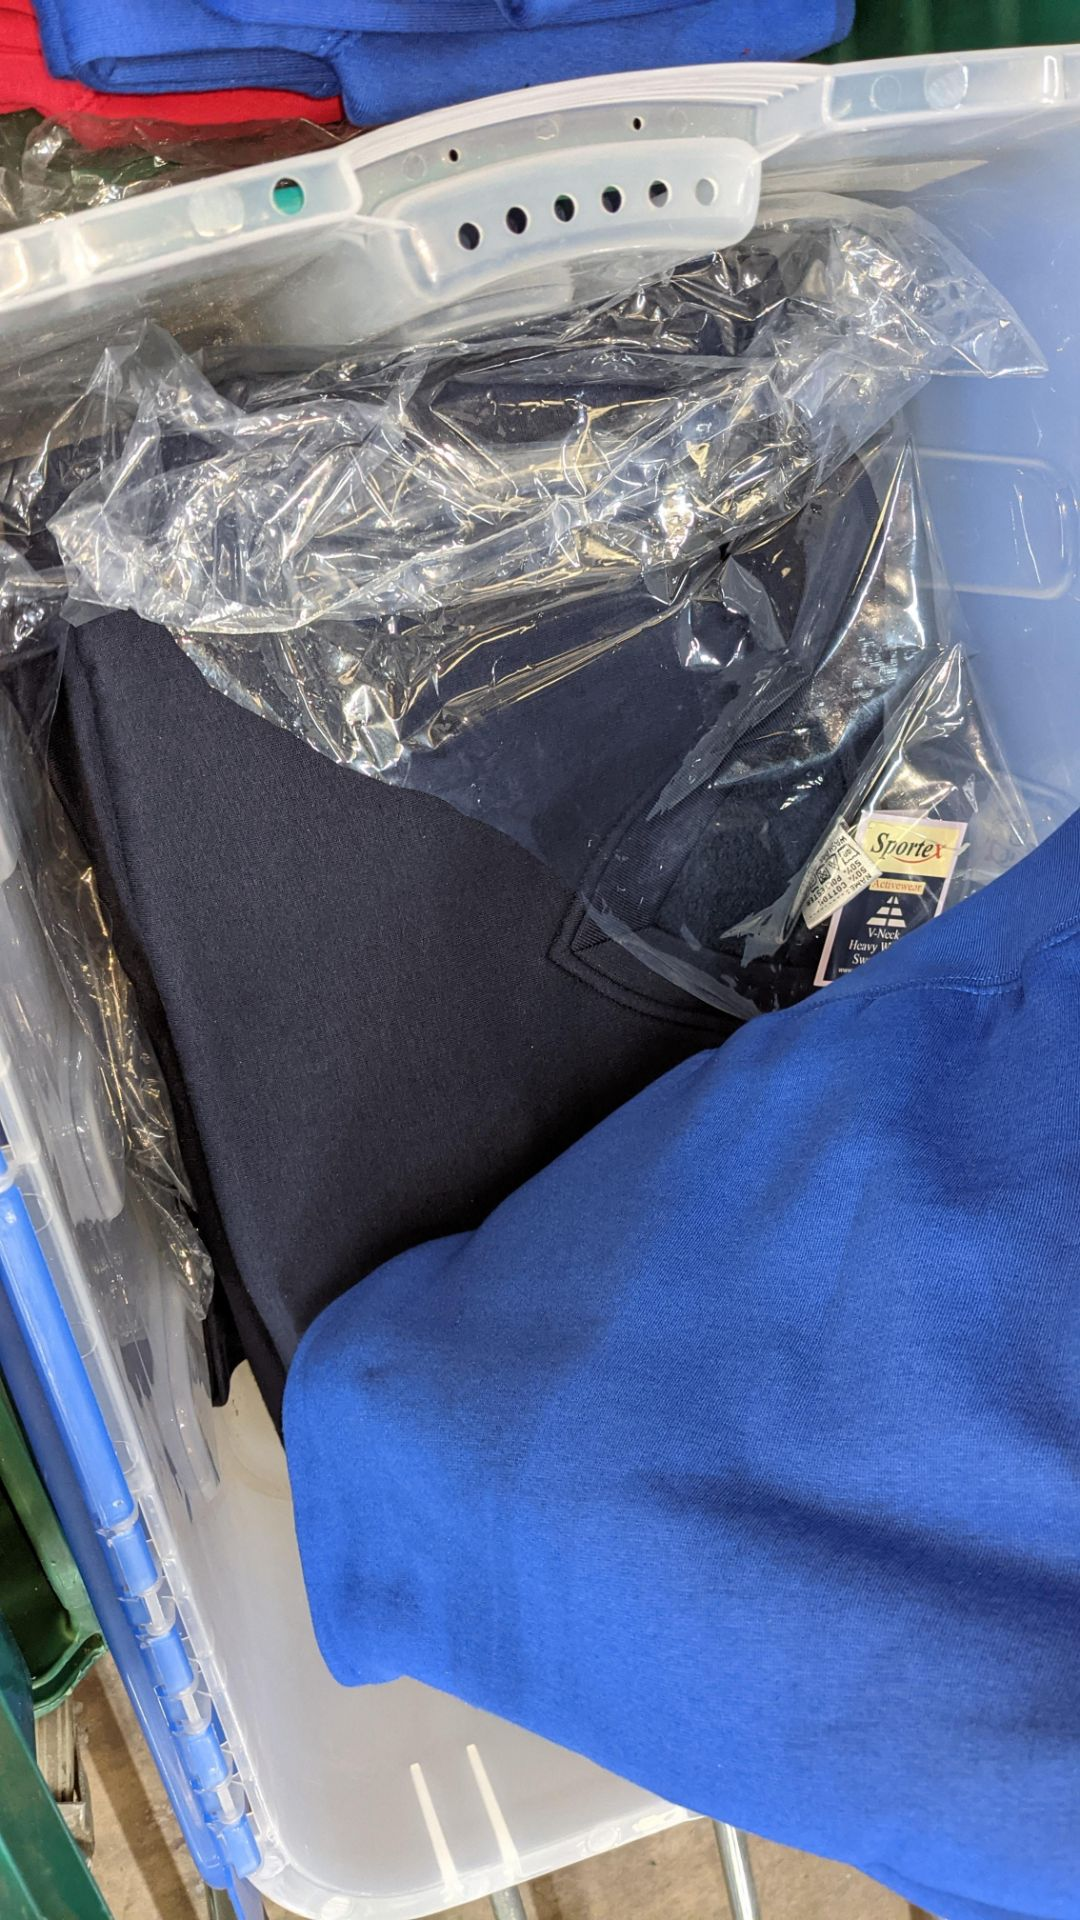 Approx 16 off Sportex children's assorted sweatshirts - the contents of 2 crates. NB crates exclude - Image 7 of 7